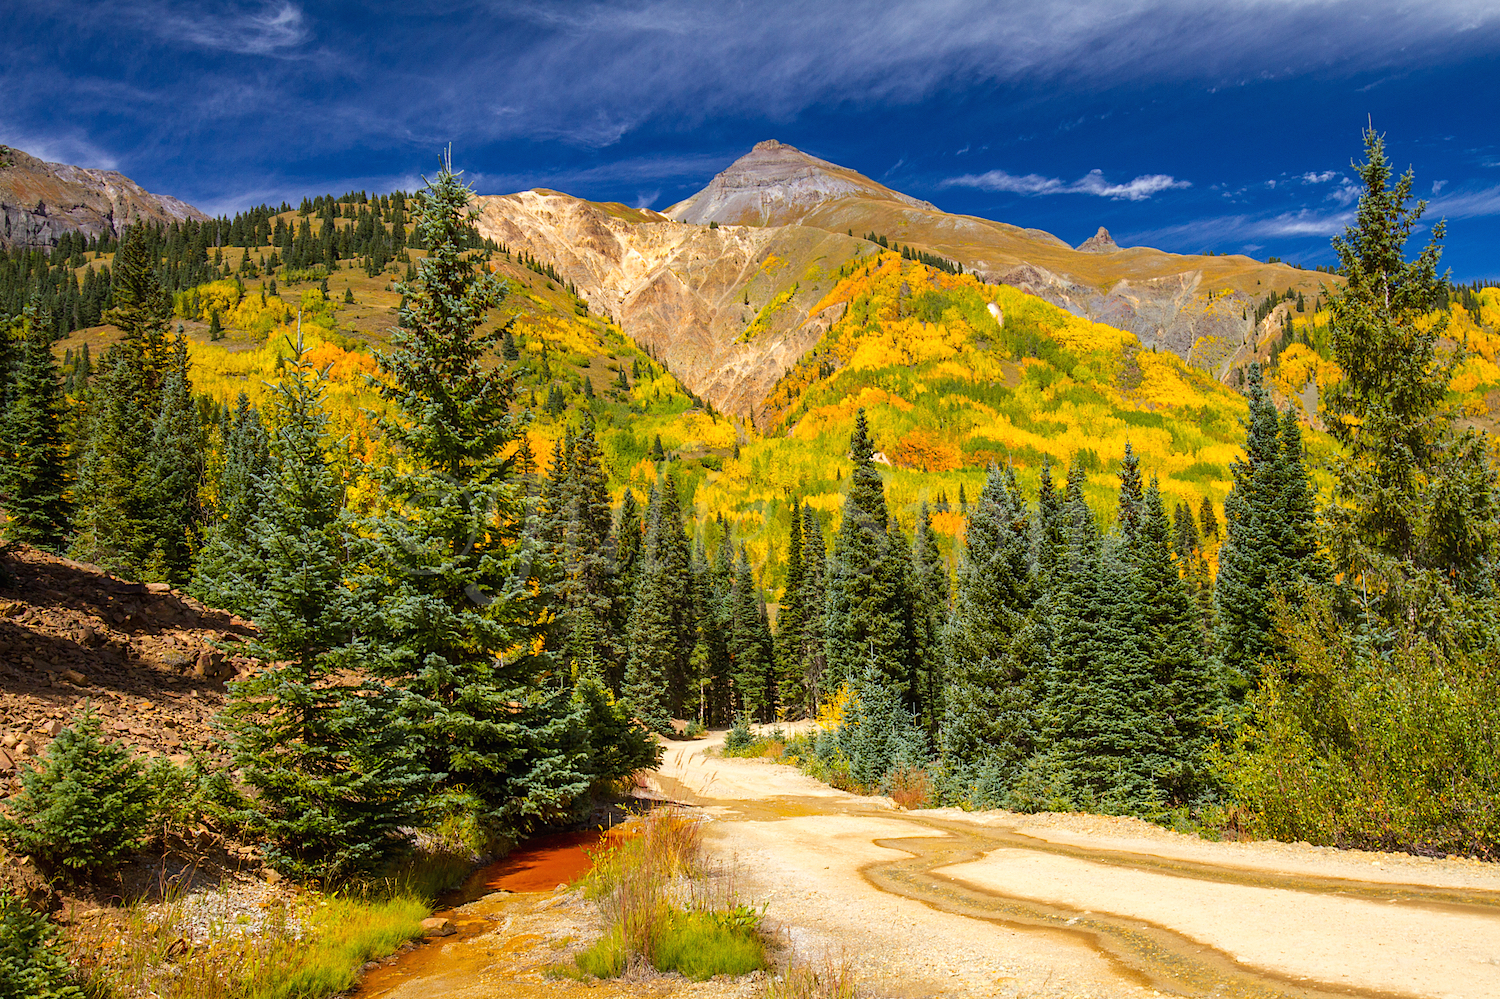 Red Mountain Fall Color, Image #9525